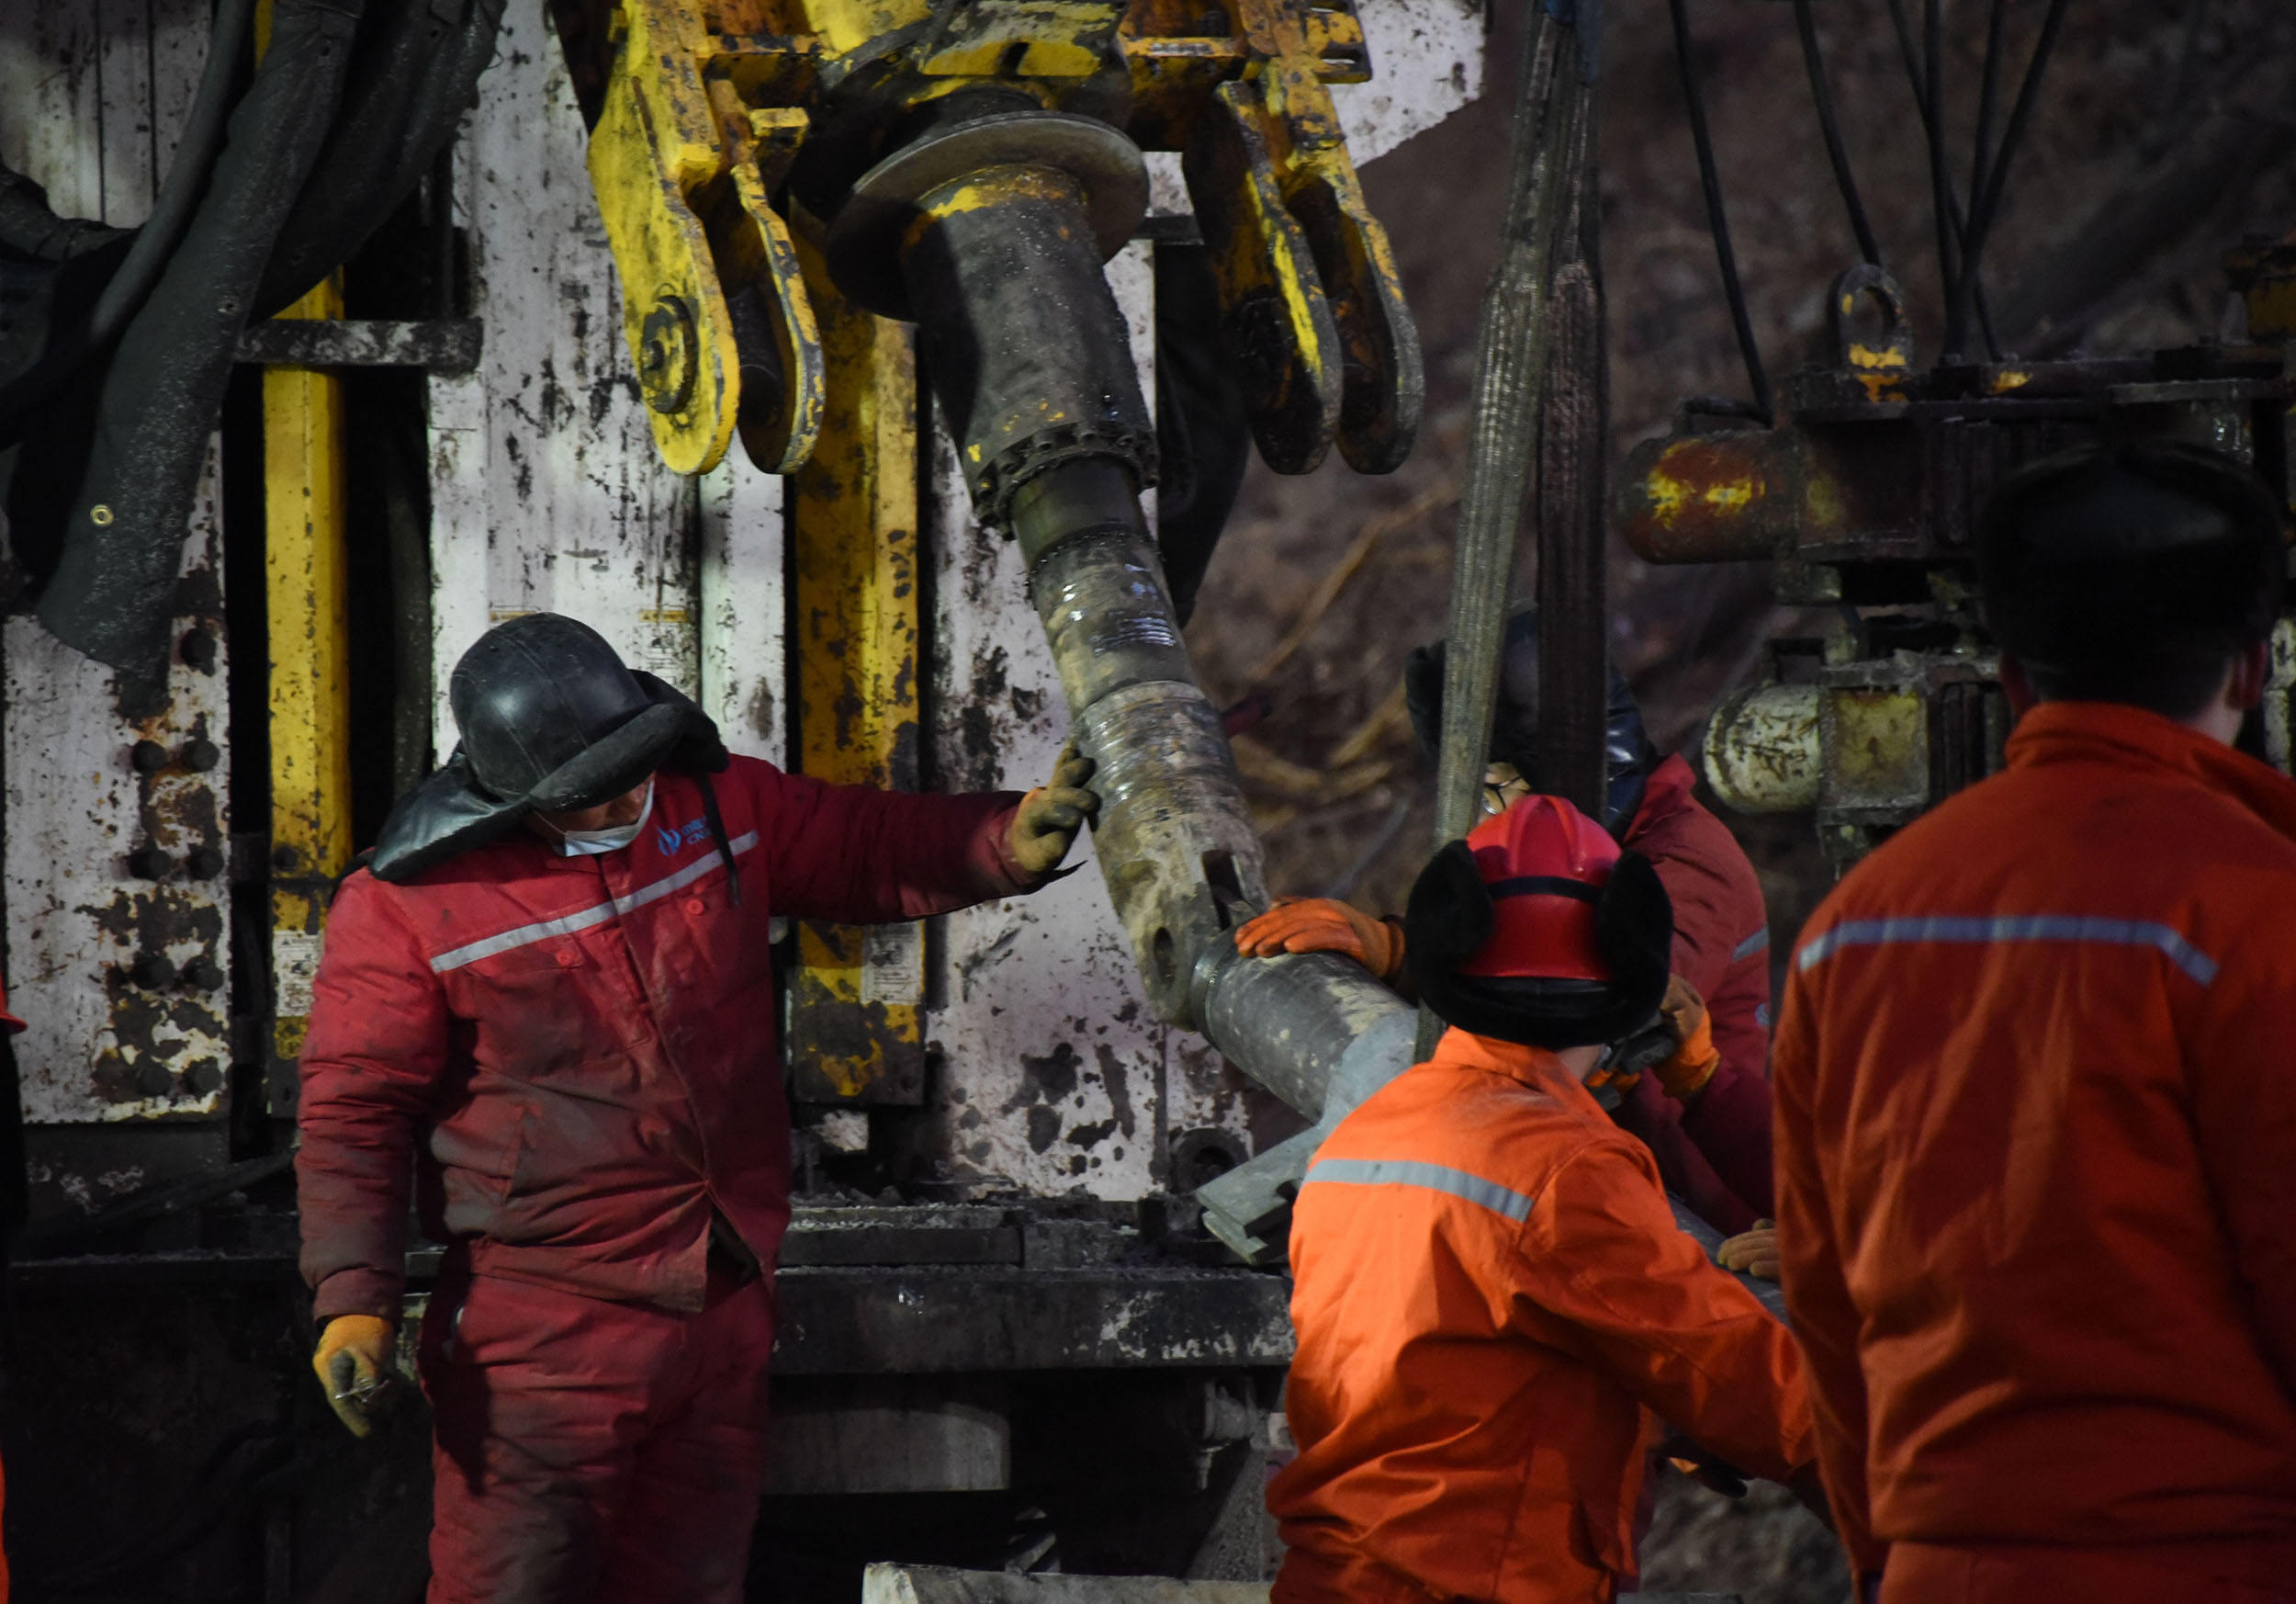 'Please don't stop the rescue': Crews race to save trapped miners in China